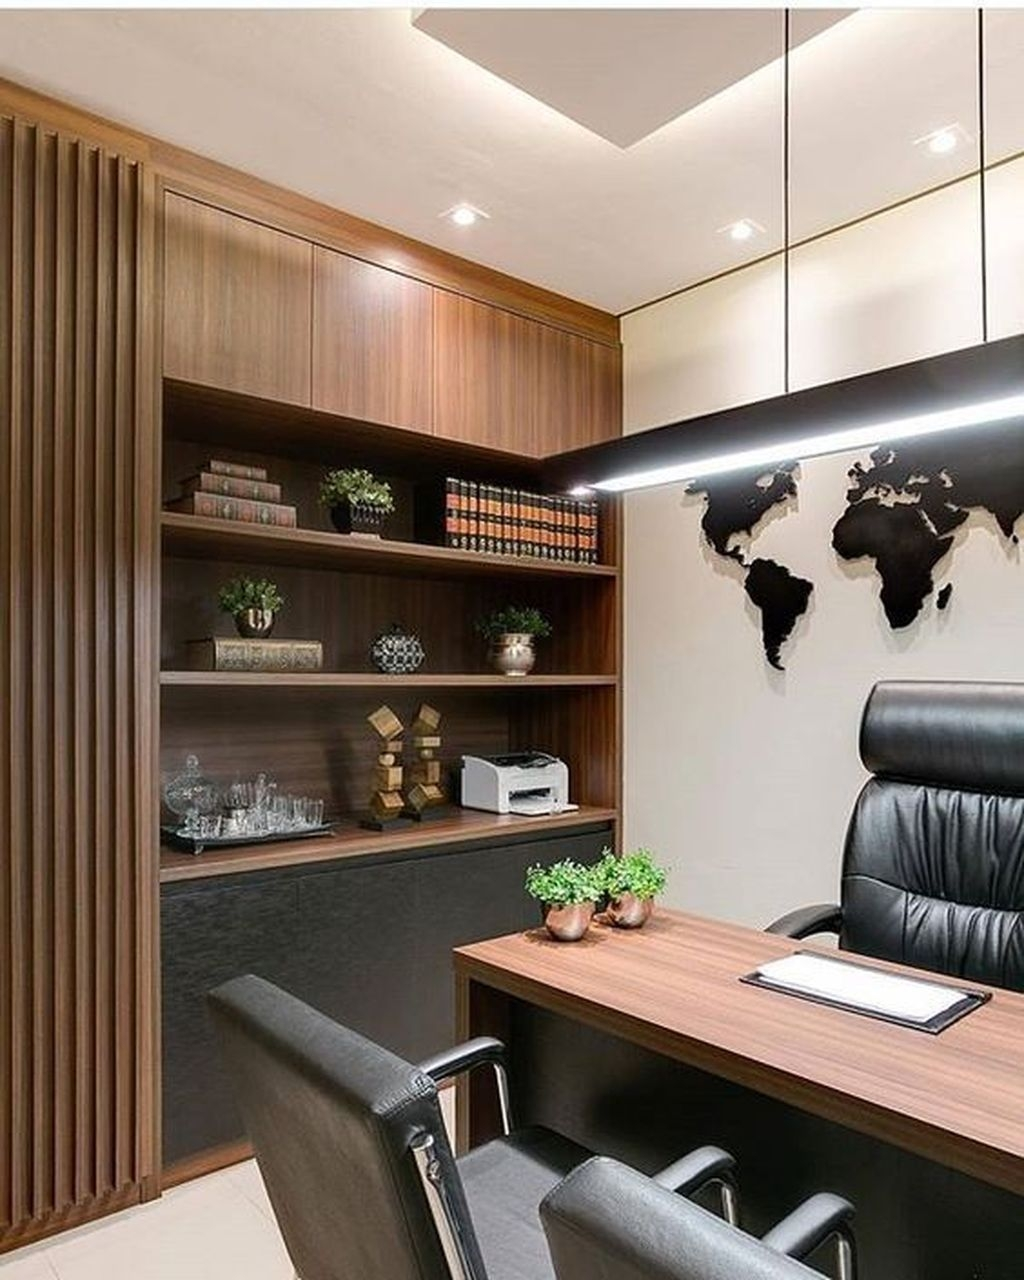 20 Gorgeous Traditional Small Home Office Design Ideas For You To Have Gagohome